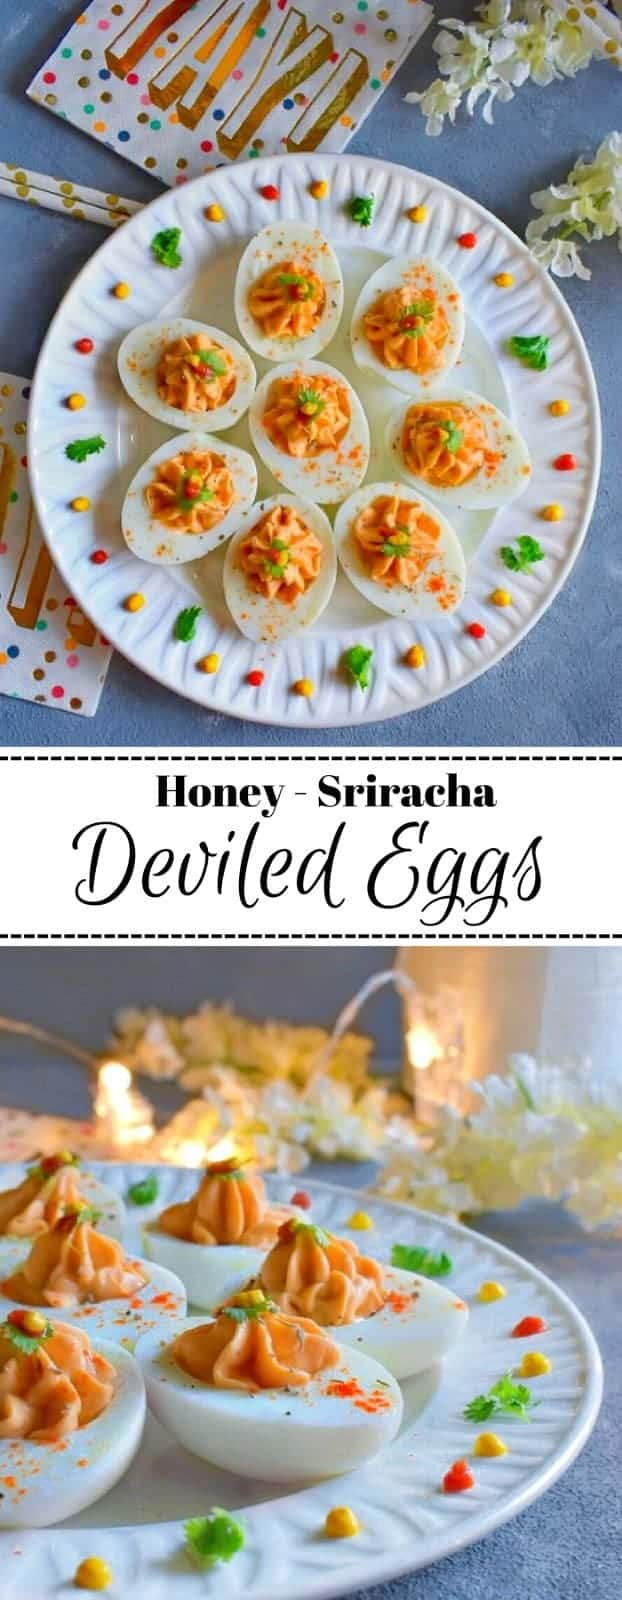 Honey Sriracha Deviled Eggs: #deviled #eggs #snacks #NationalHoneyMonth #ad